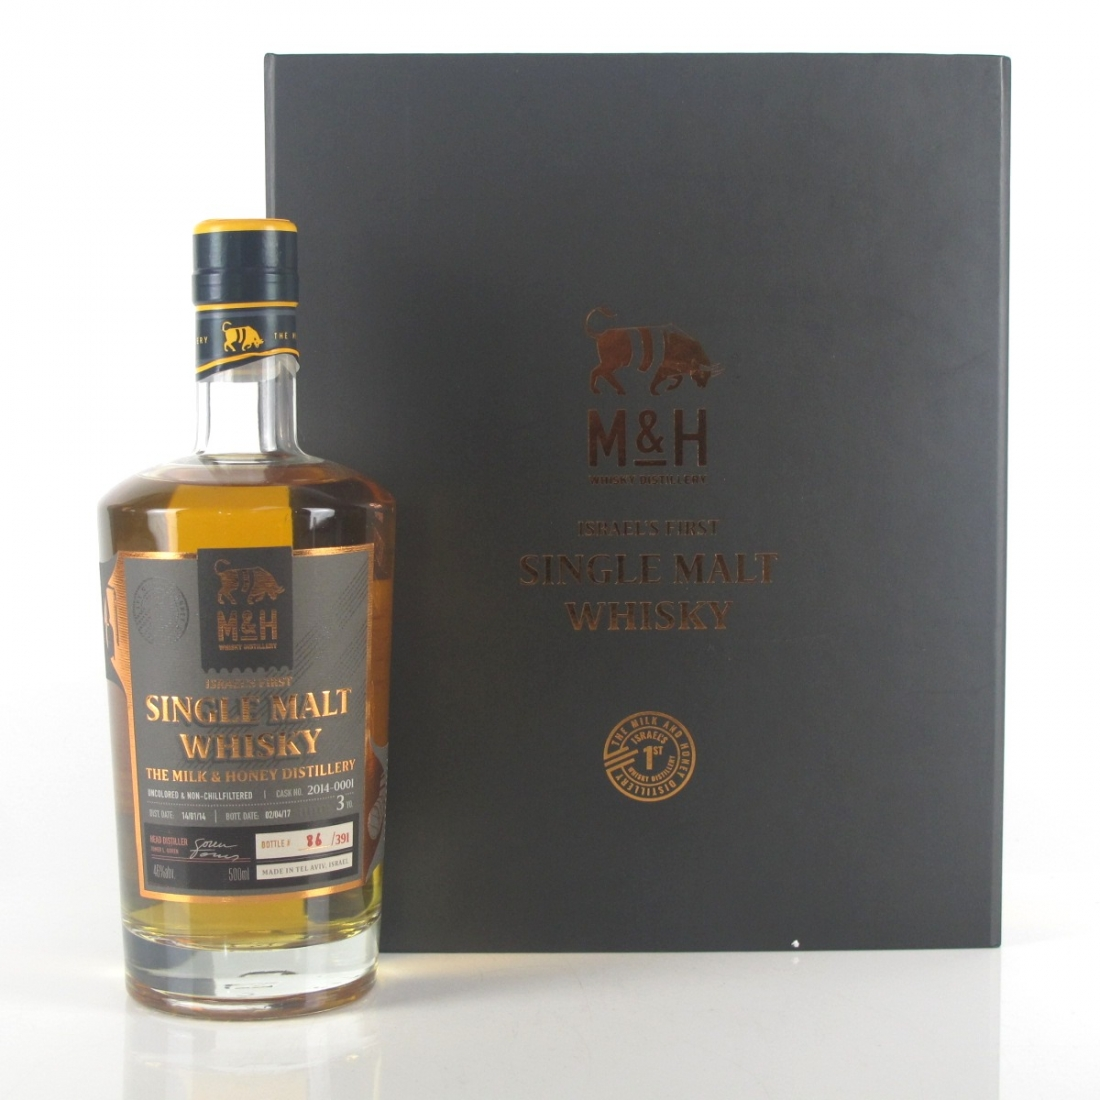 Milk & Honey Israel's First Single Malt Whisky : Bottle #086